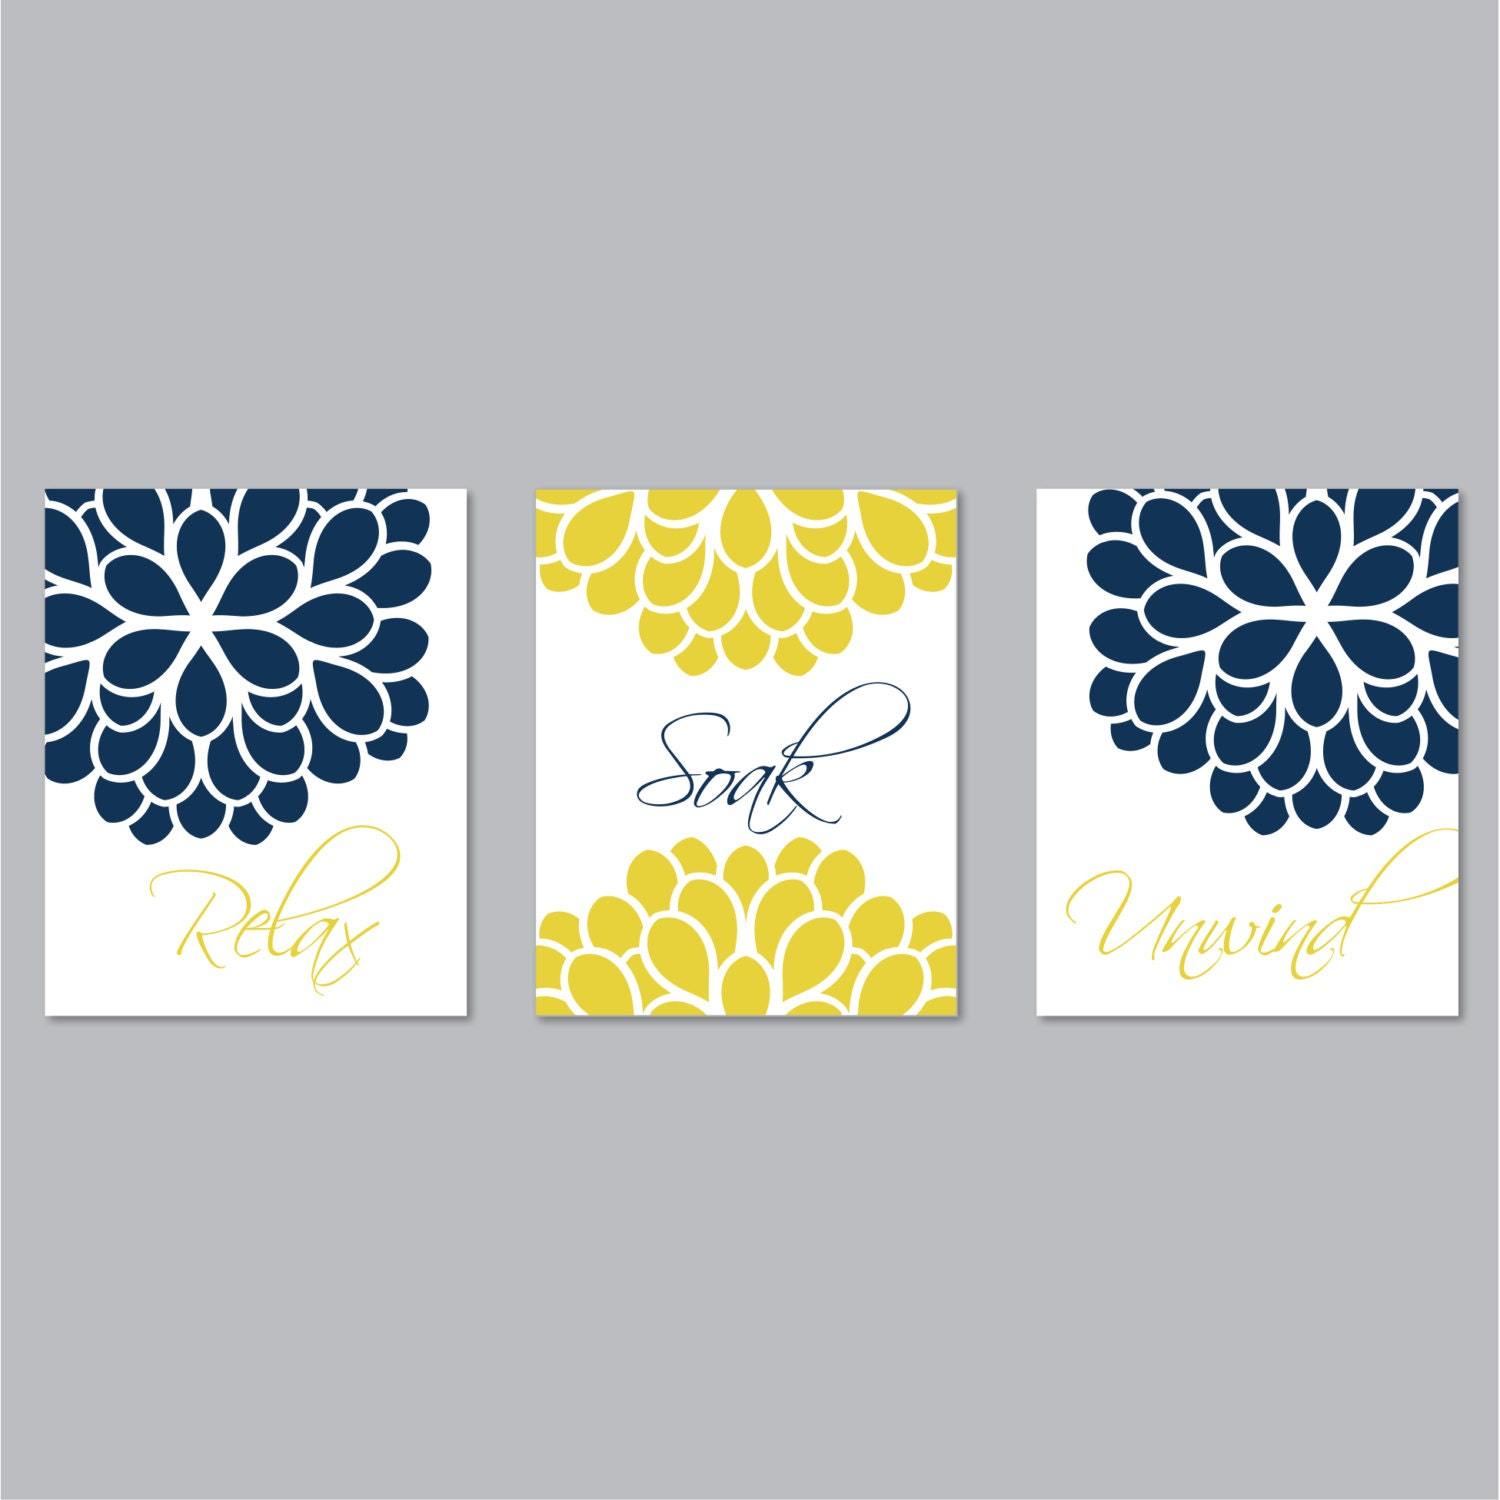 Floral Relax Soak Unwind Print Trio. Bathroom Home Decor Wall.